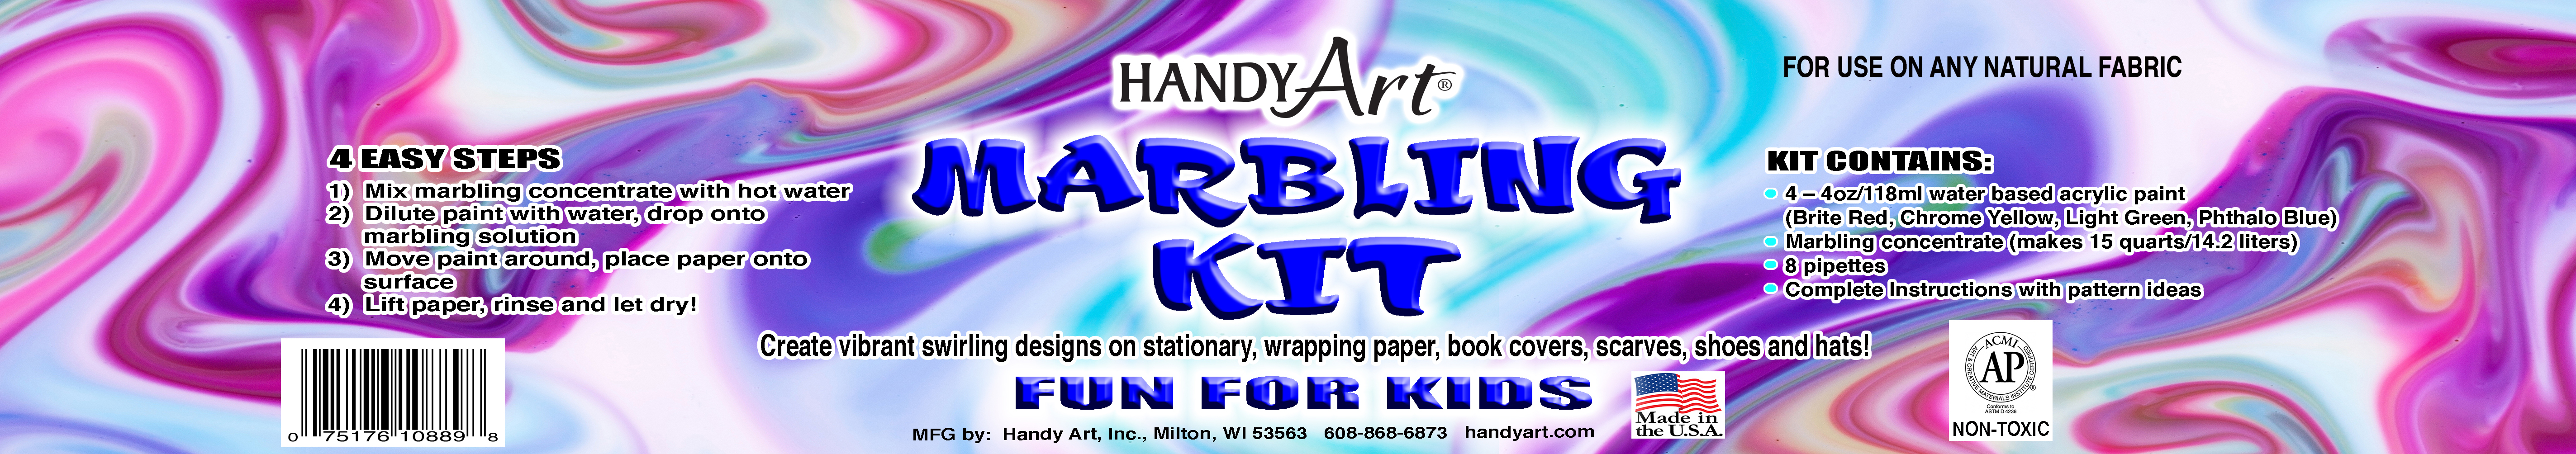 Handy Art - Marbling Kit